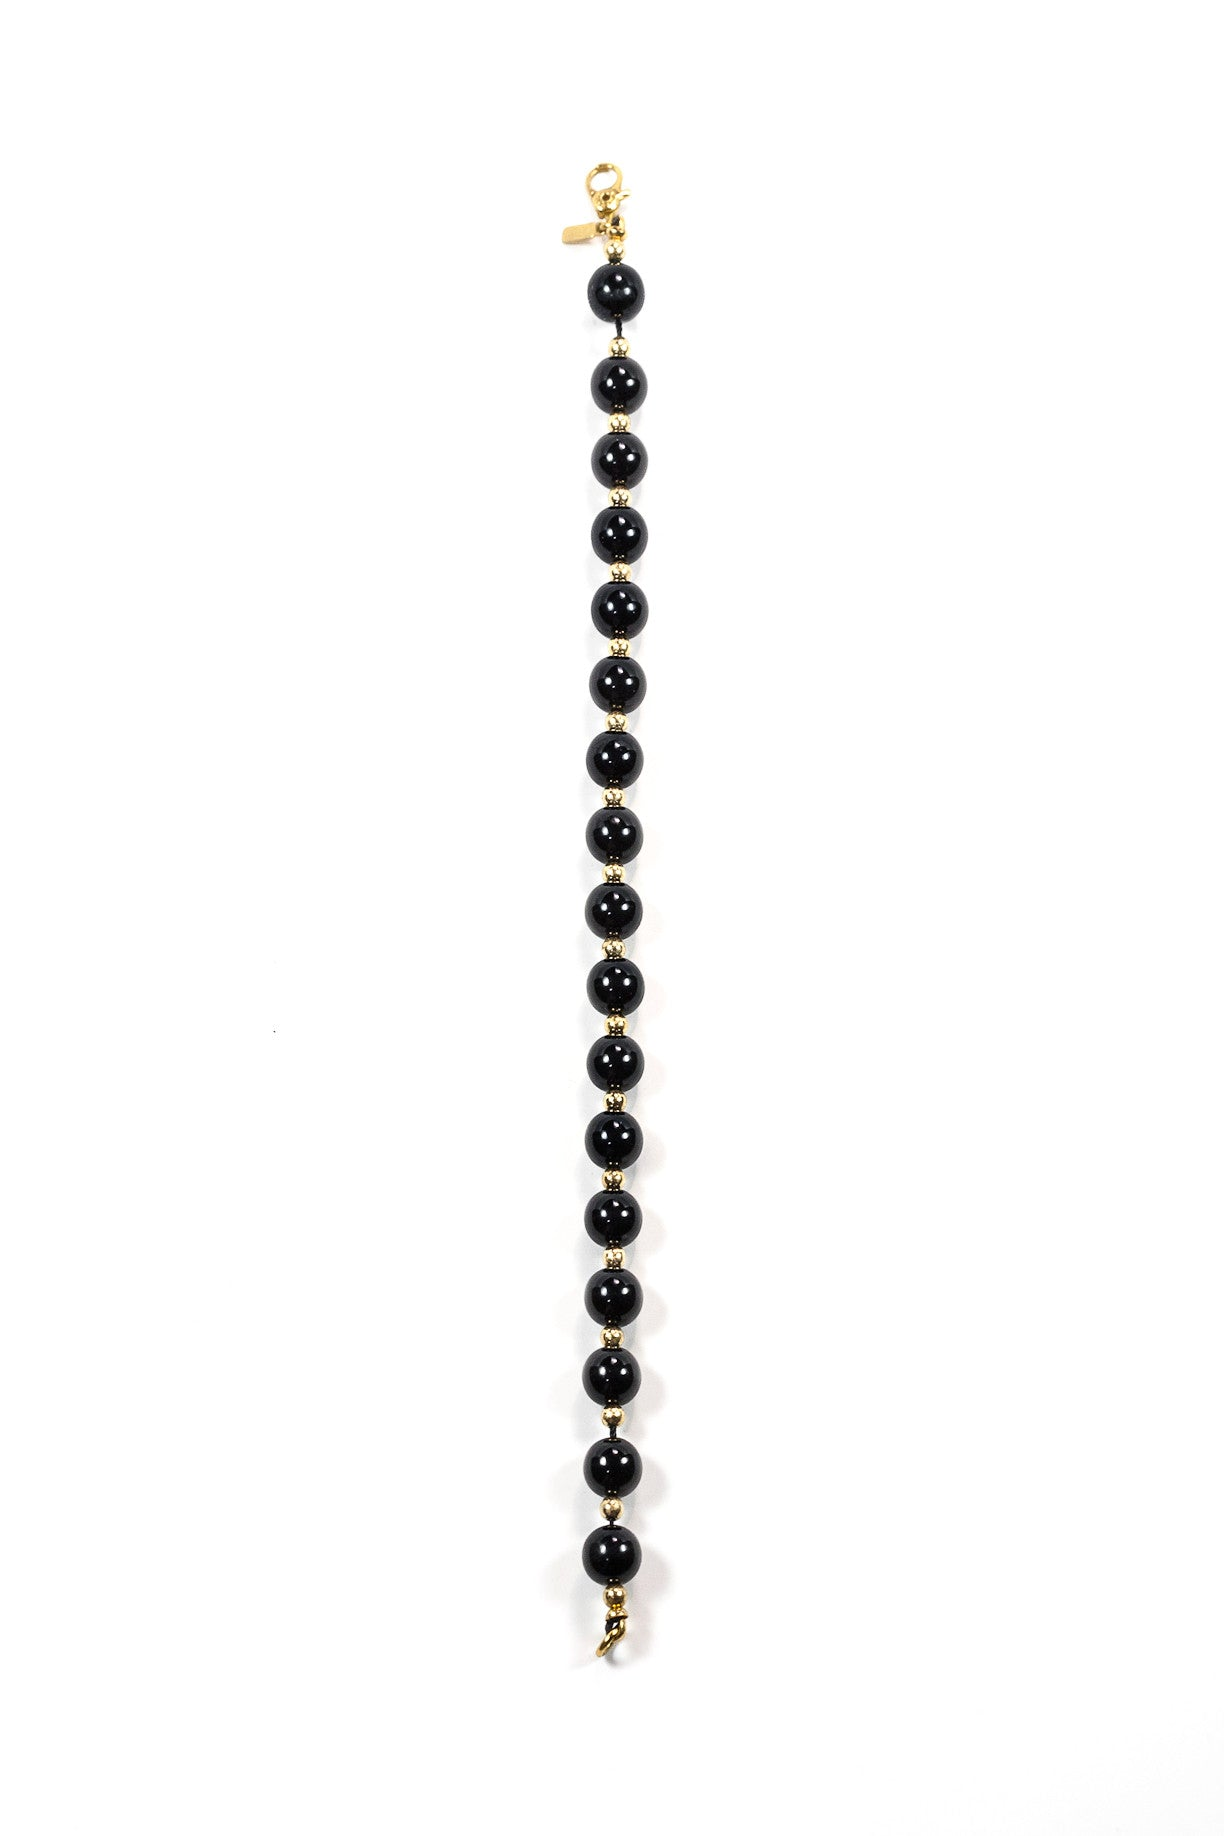 70's__Monet__Black Bead Bracelet